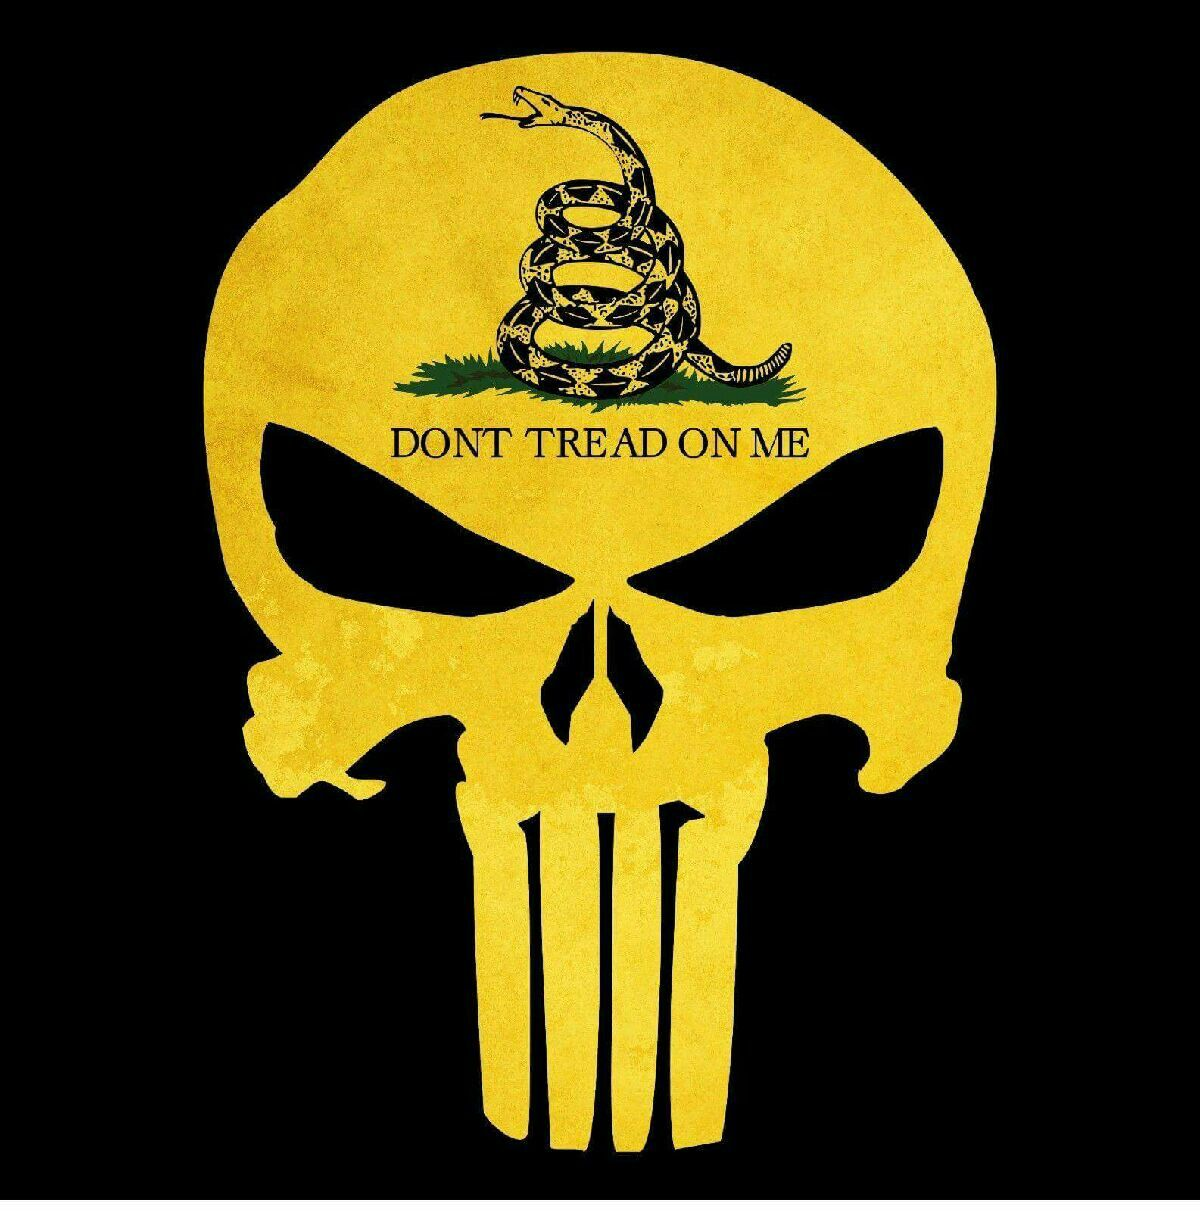 Don't tread on me!!! Dont tread on me, Punisher artwork